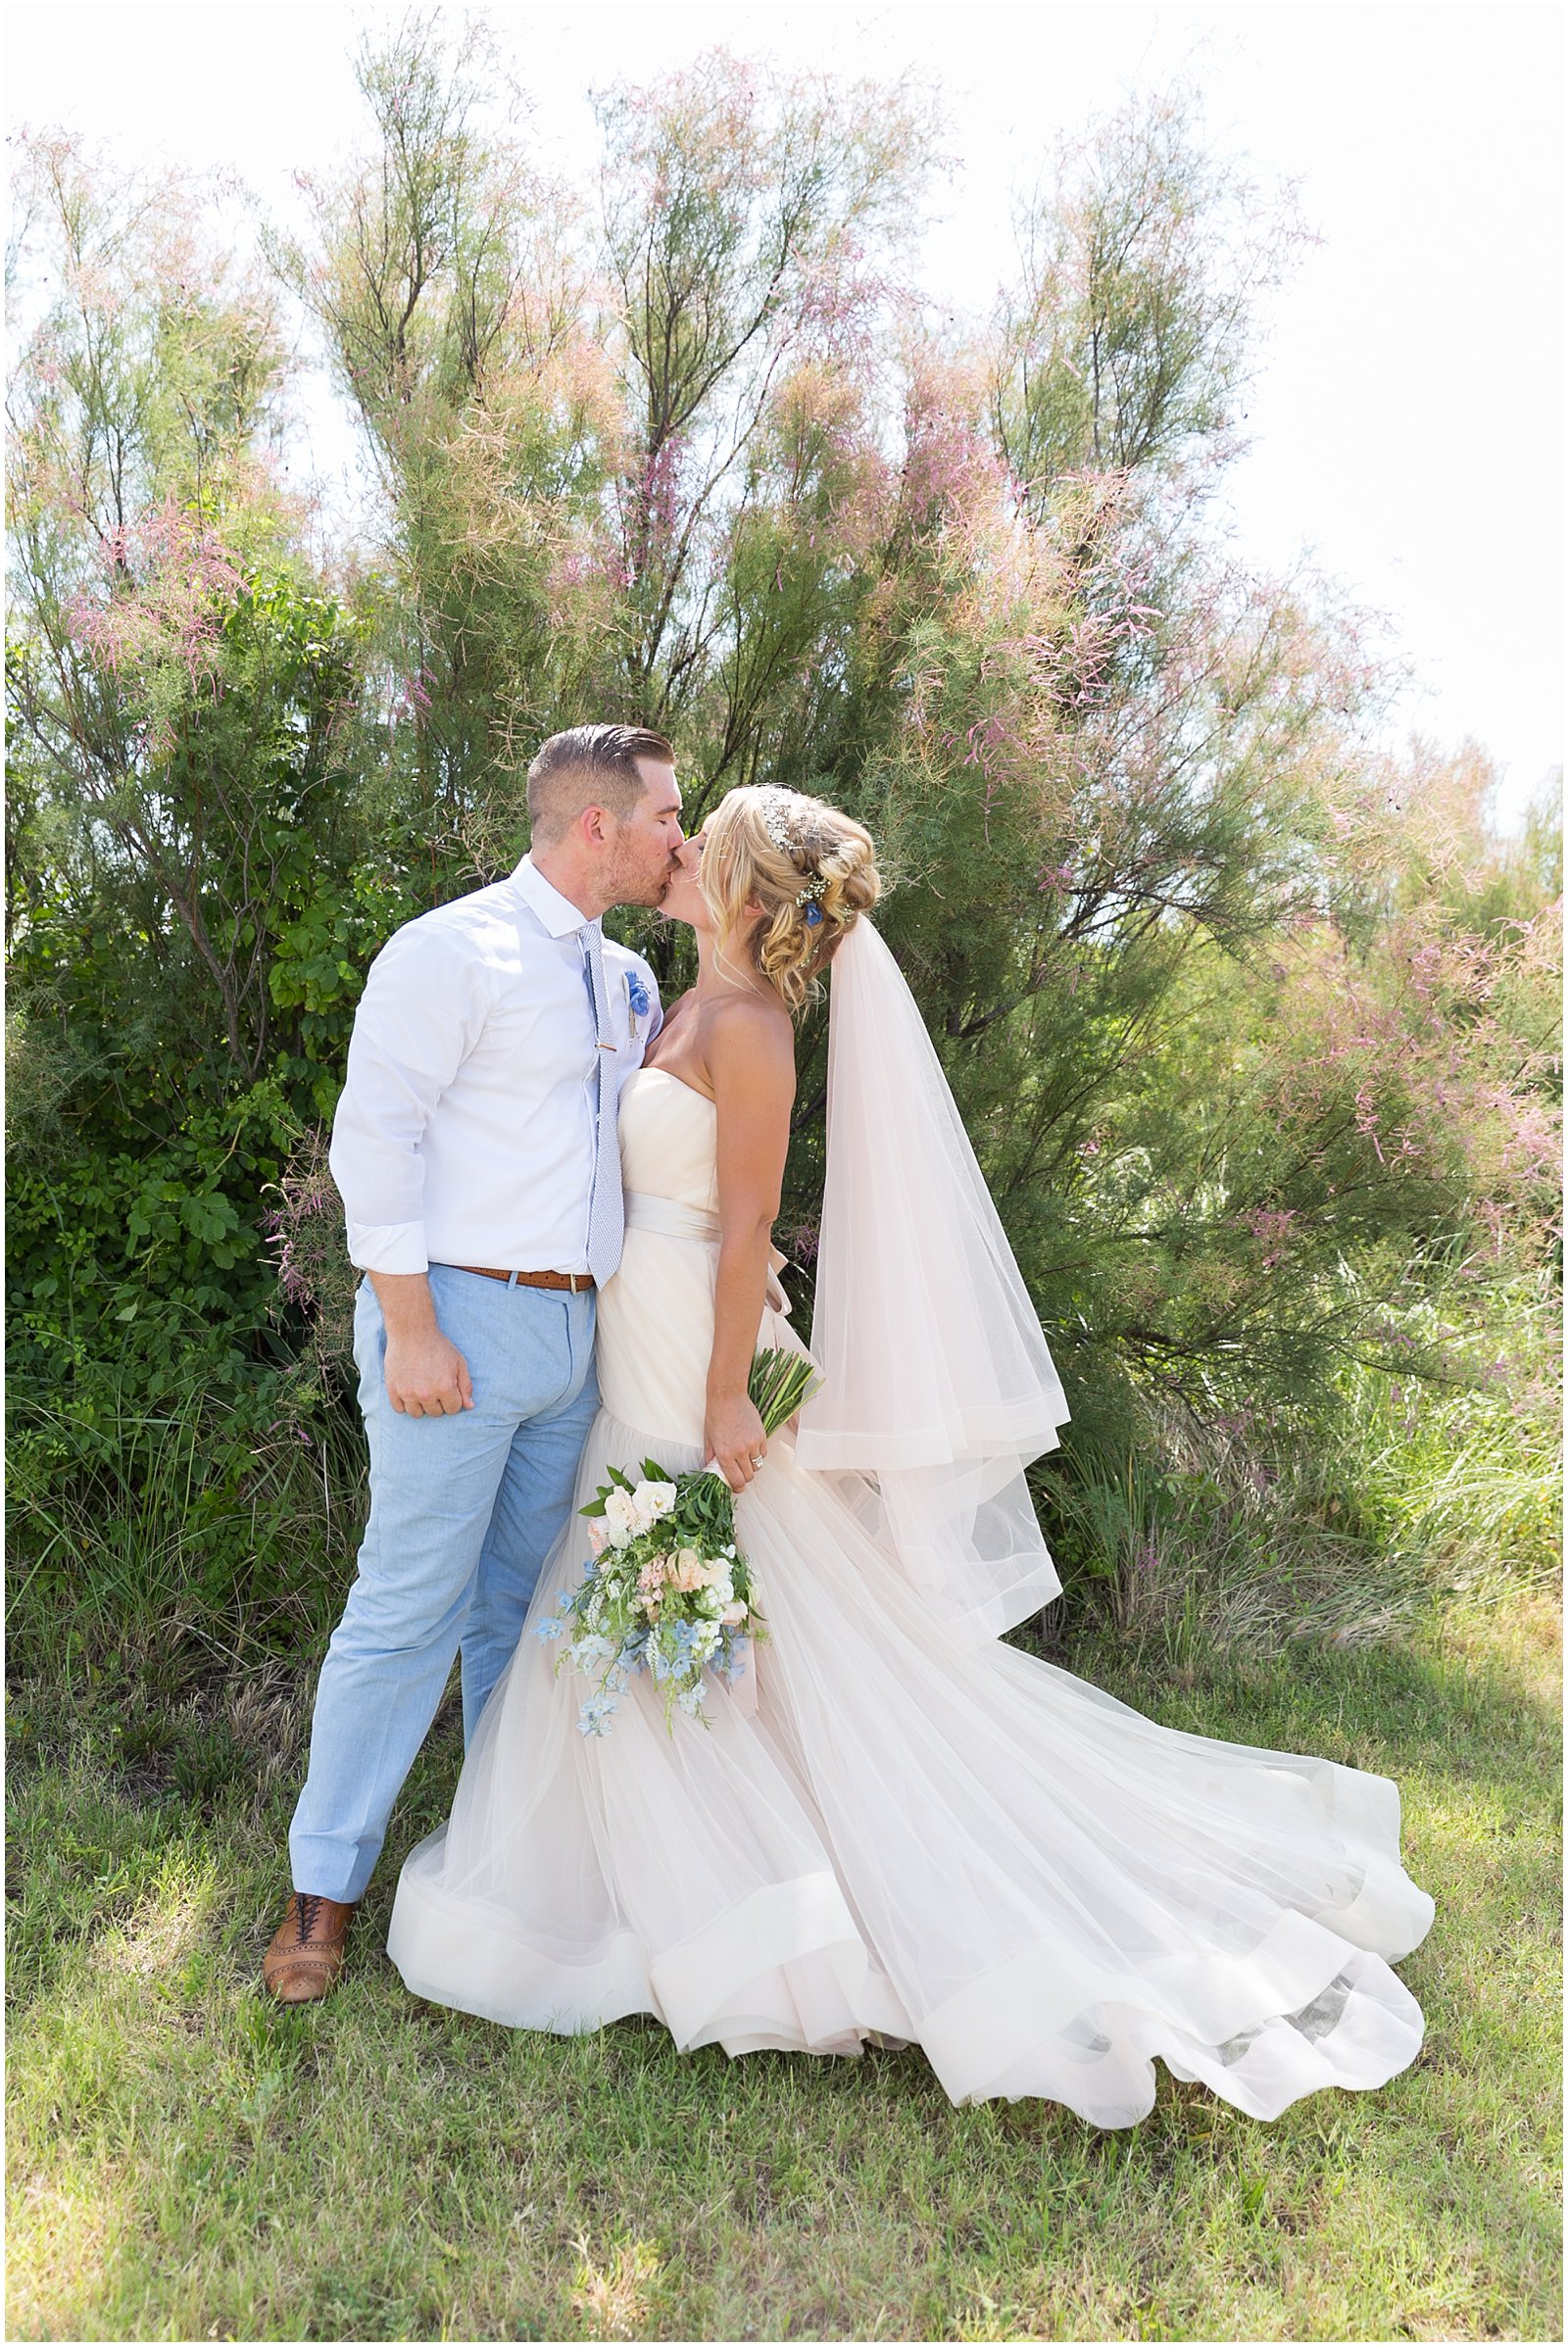 jessica_ryan_photography_wedding_virginia_beach_virginia_wedding_photographer_candid_wedding_photography_lifestyle_photojournalistic_real_moments_0147